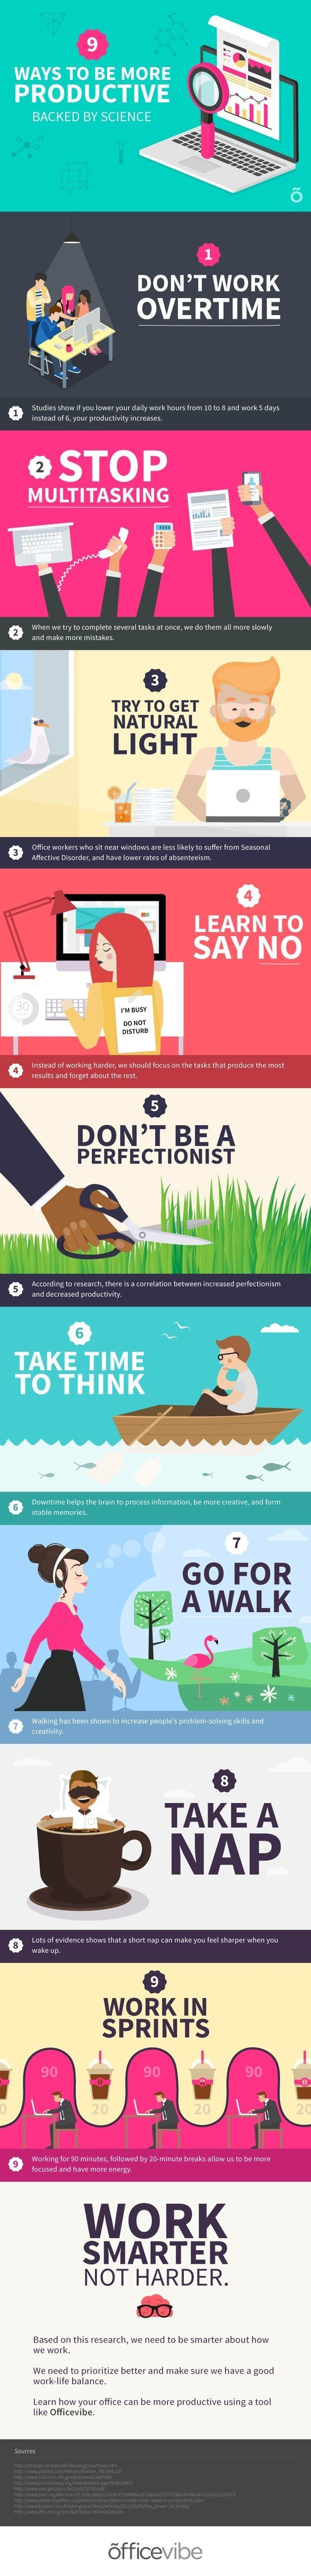 Try to Be More Productive                                                                                                                                                                                 More